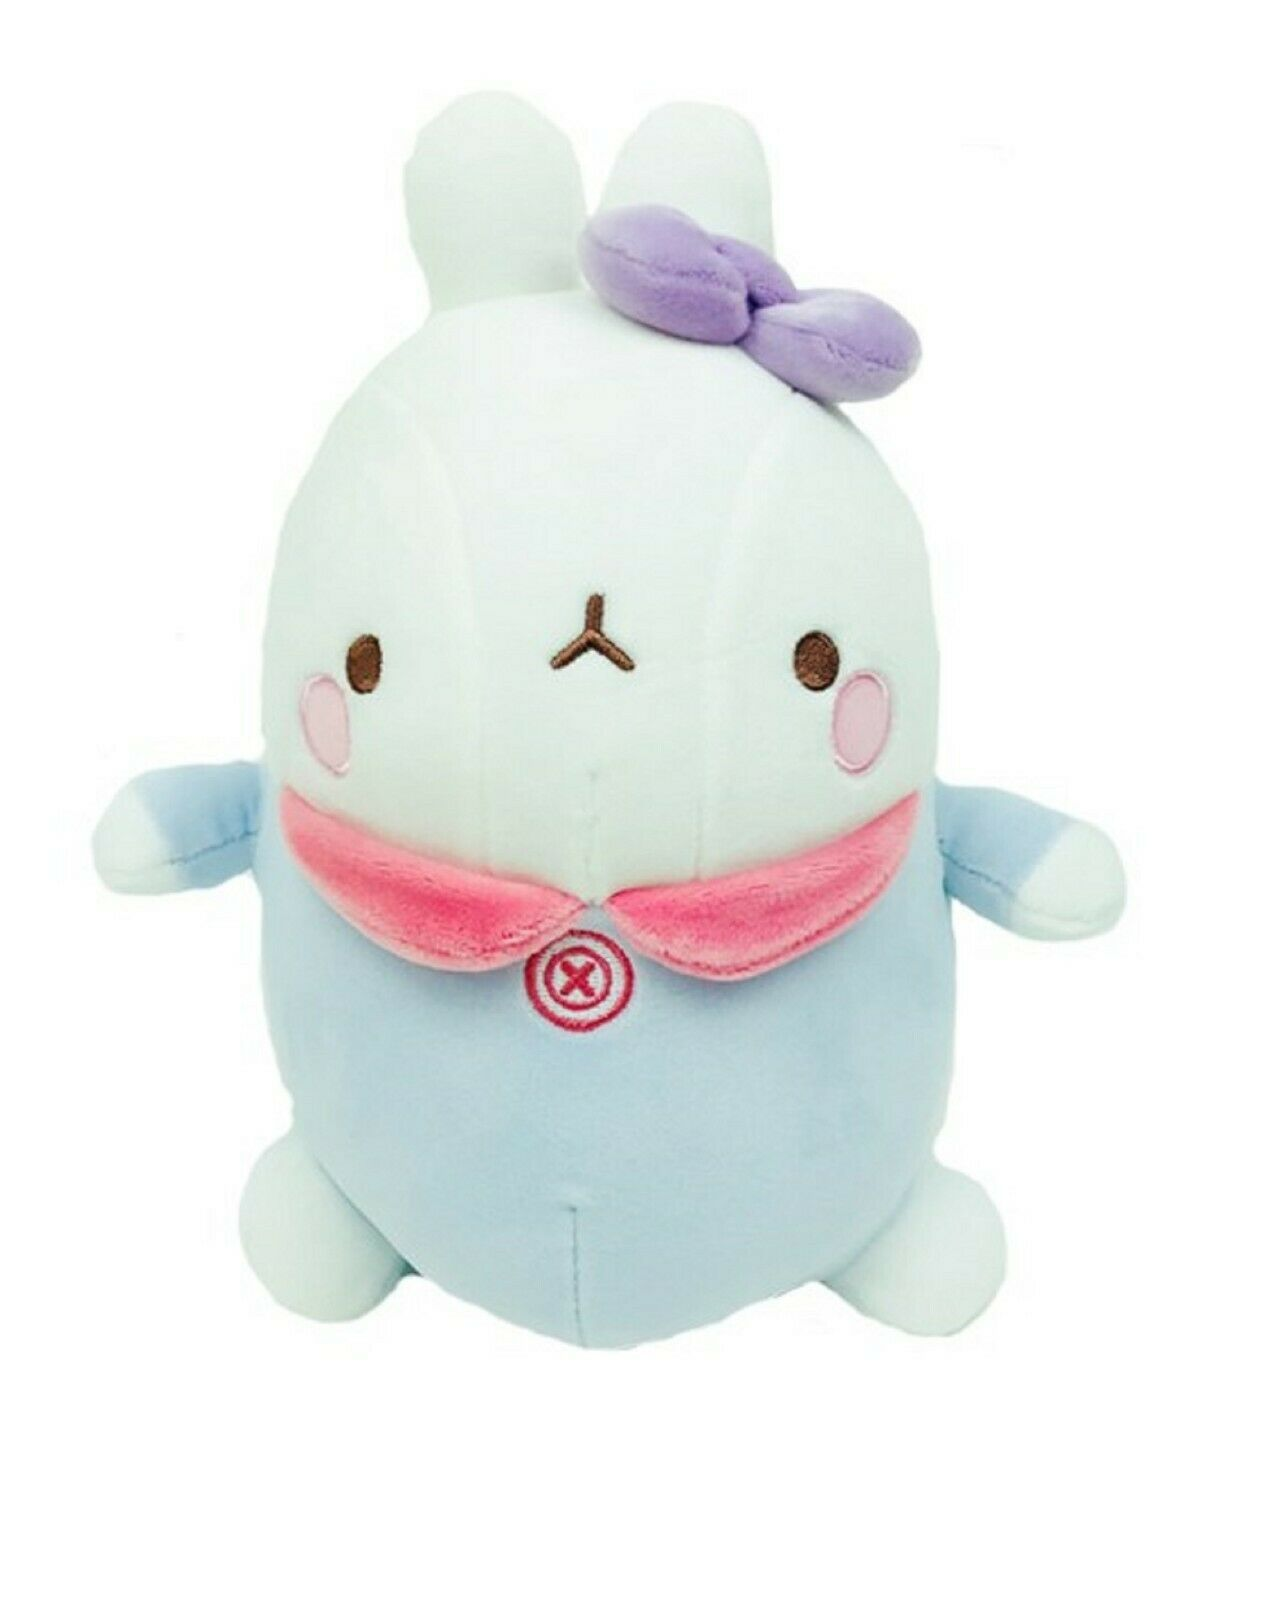 "Molang Baby Stuffed Animal Rabbit Plush Toy Soft Mochi Fluffy 9.8"" (Blue)"